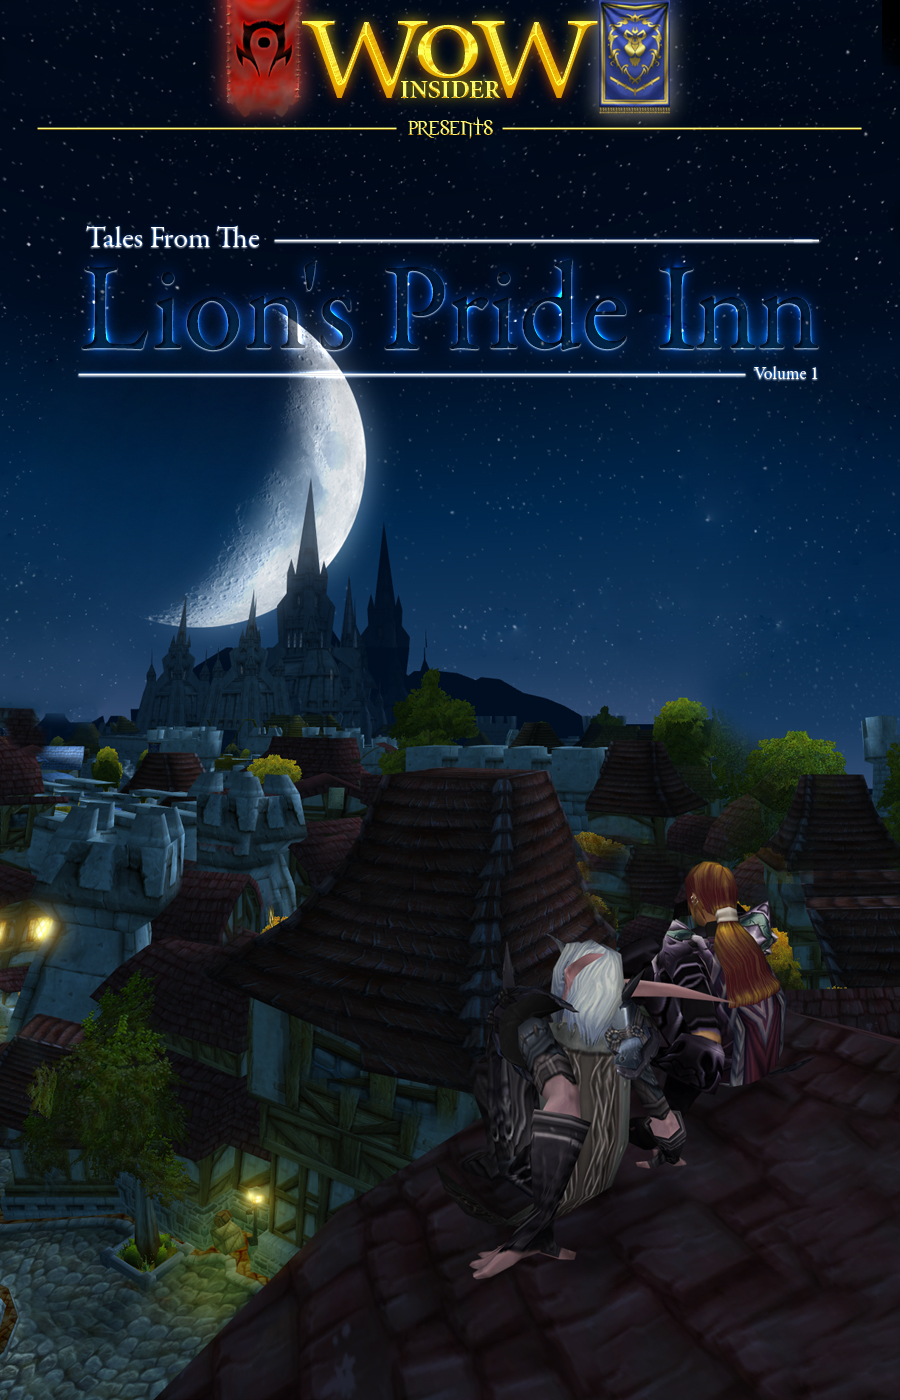 Tales from the Lion's Pride Inn Volume 1 - Cover